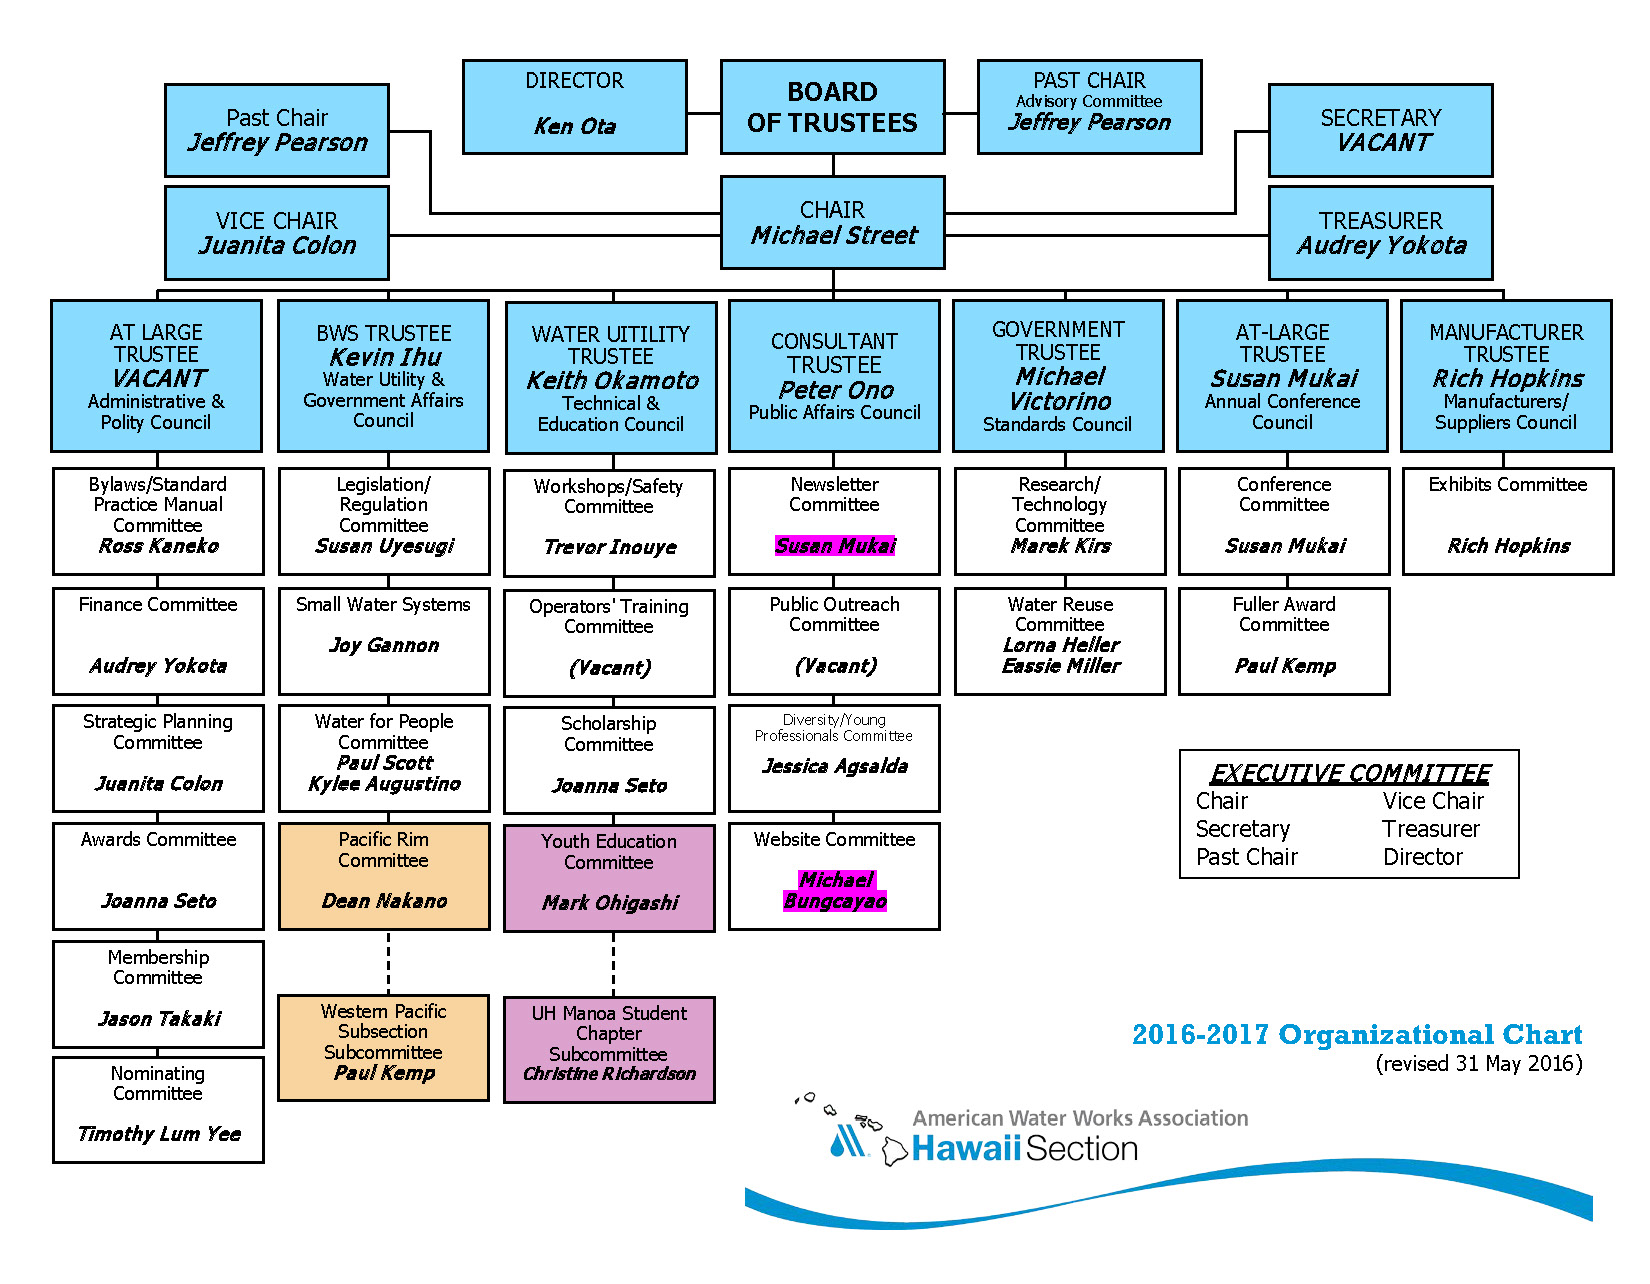 160521_AWWA HAWAII SECTION _2016-17 Org Chart.jpg